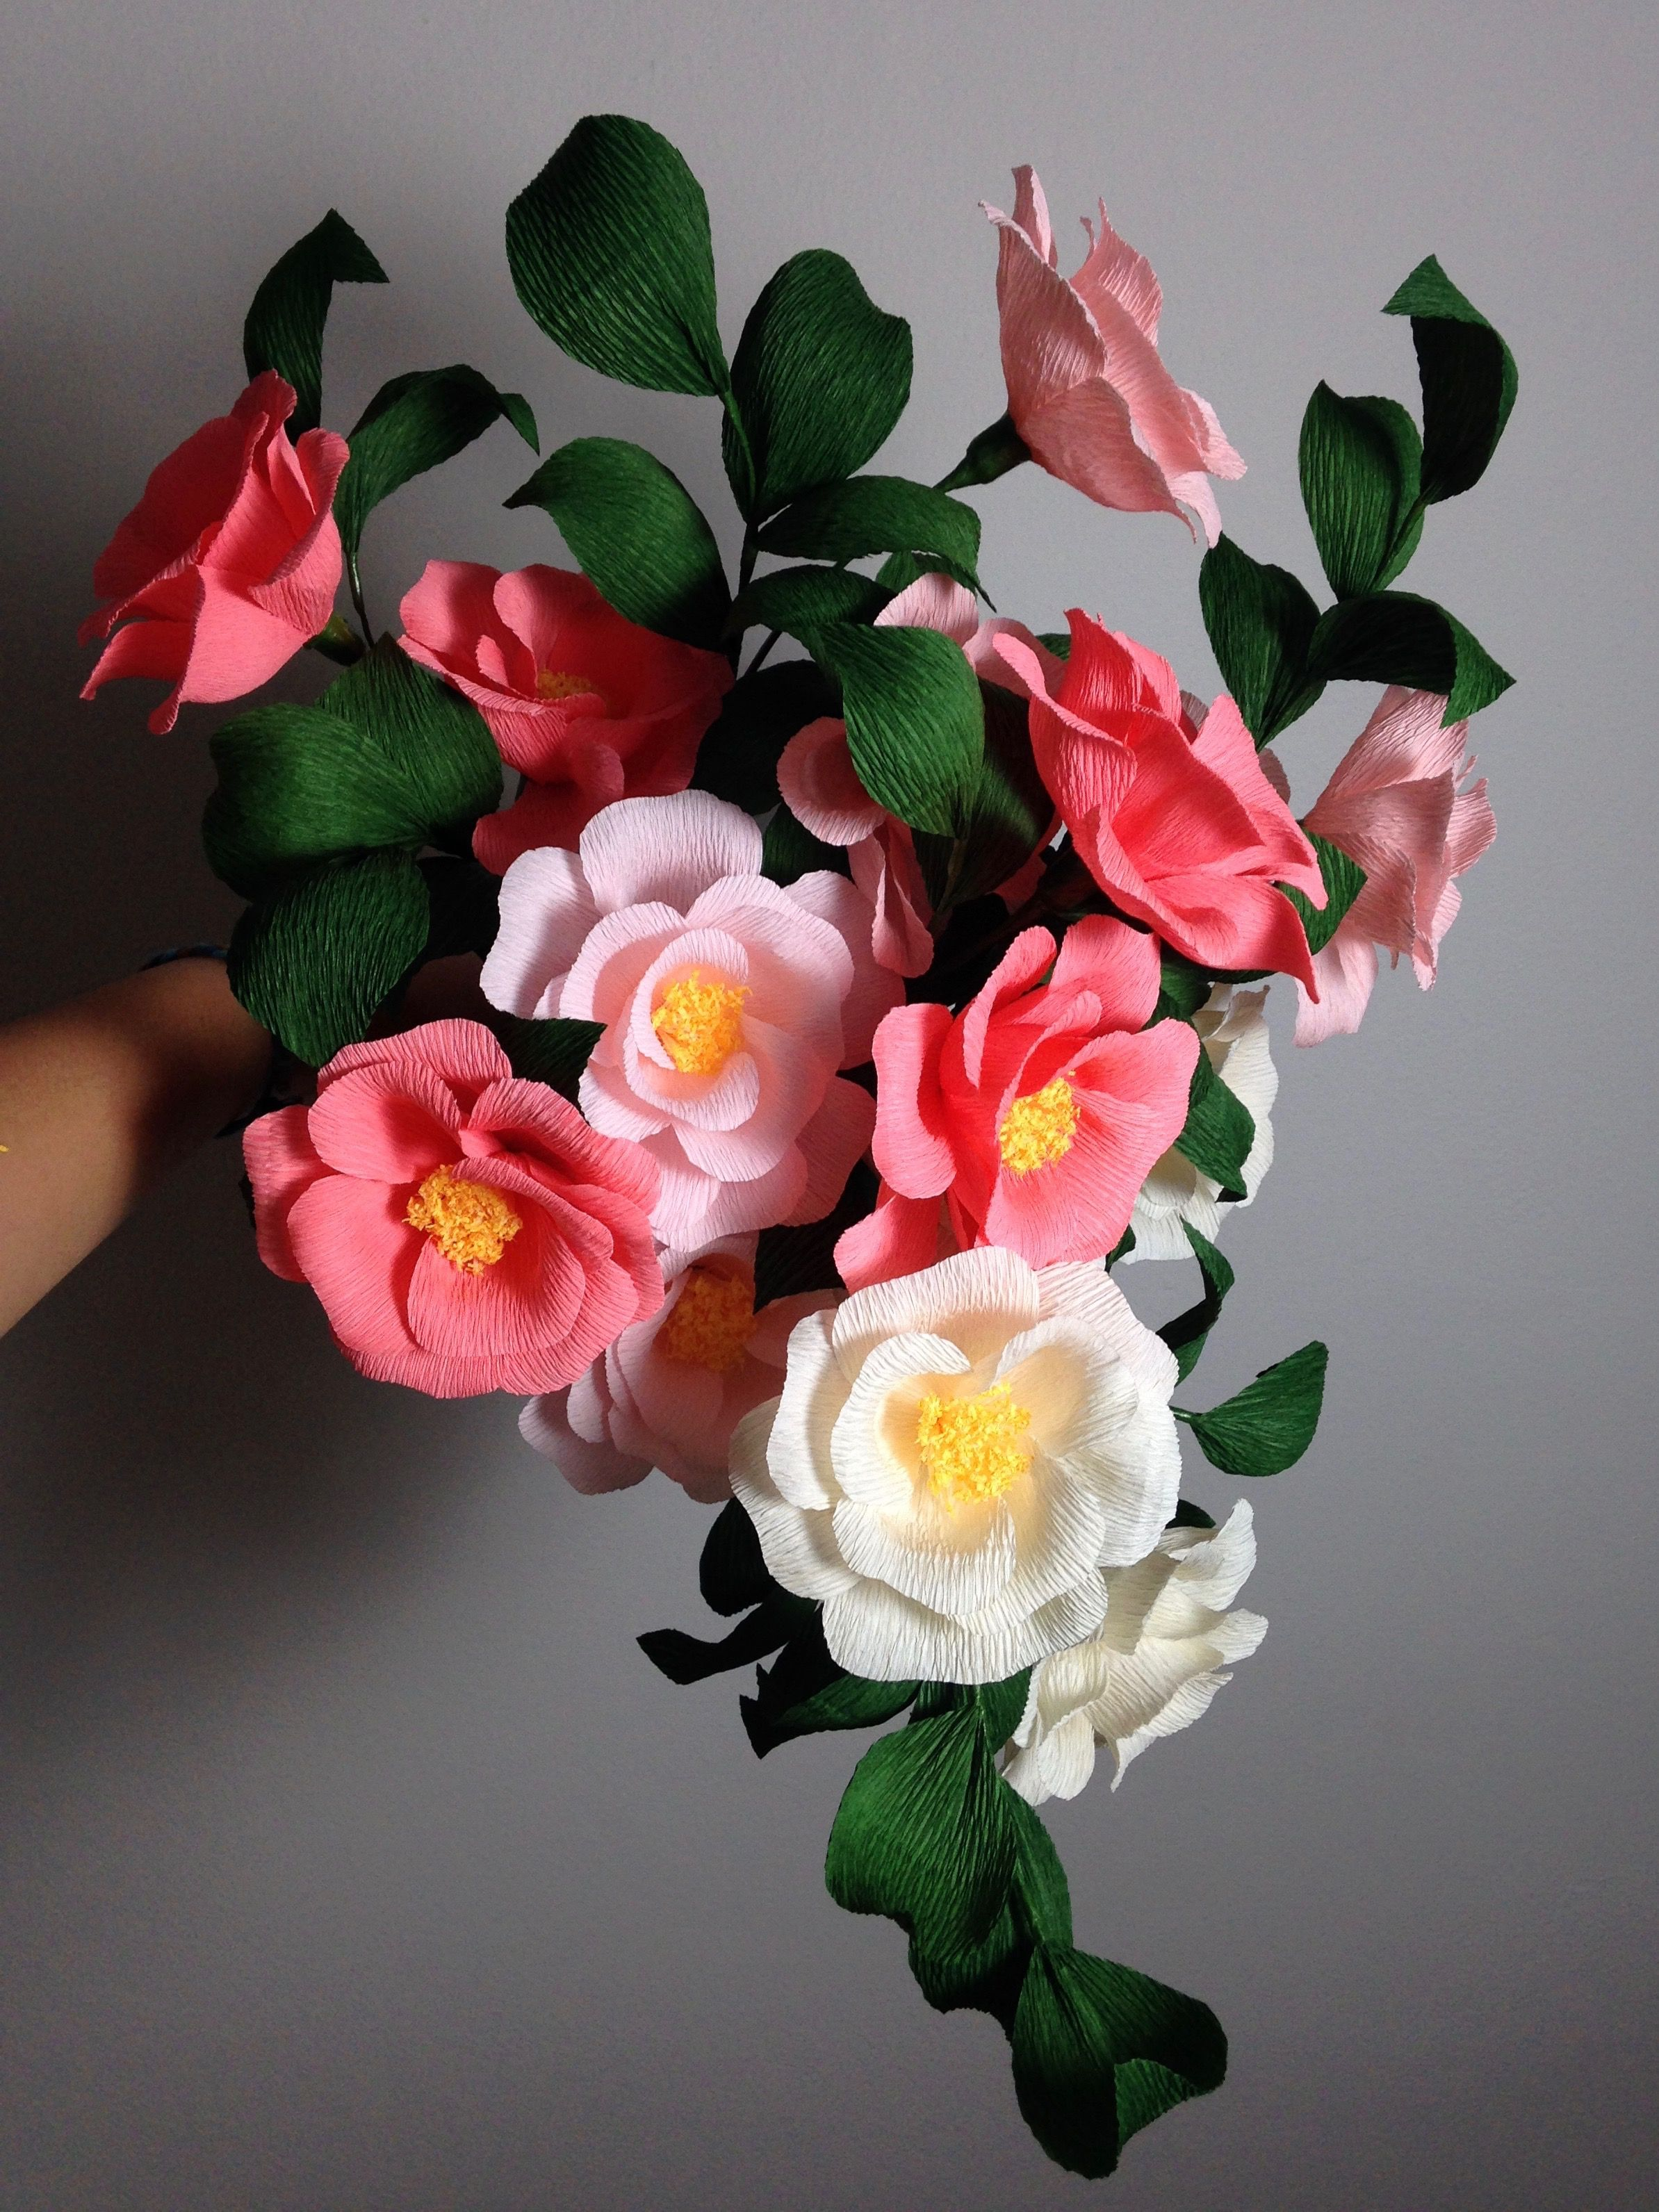 Crepe paper camellia flower bouquet, handmade by Papetal ...